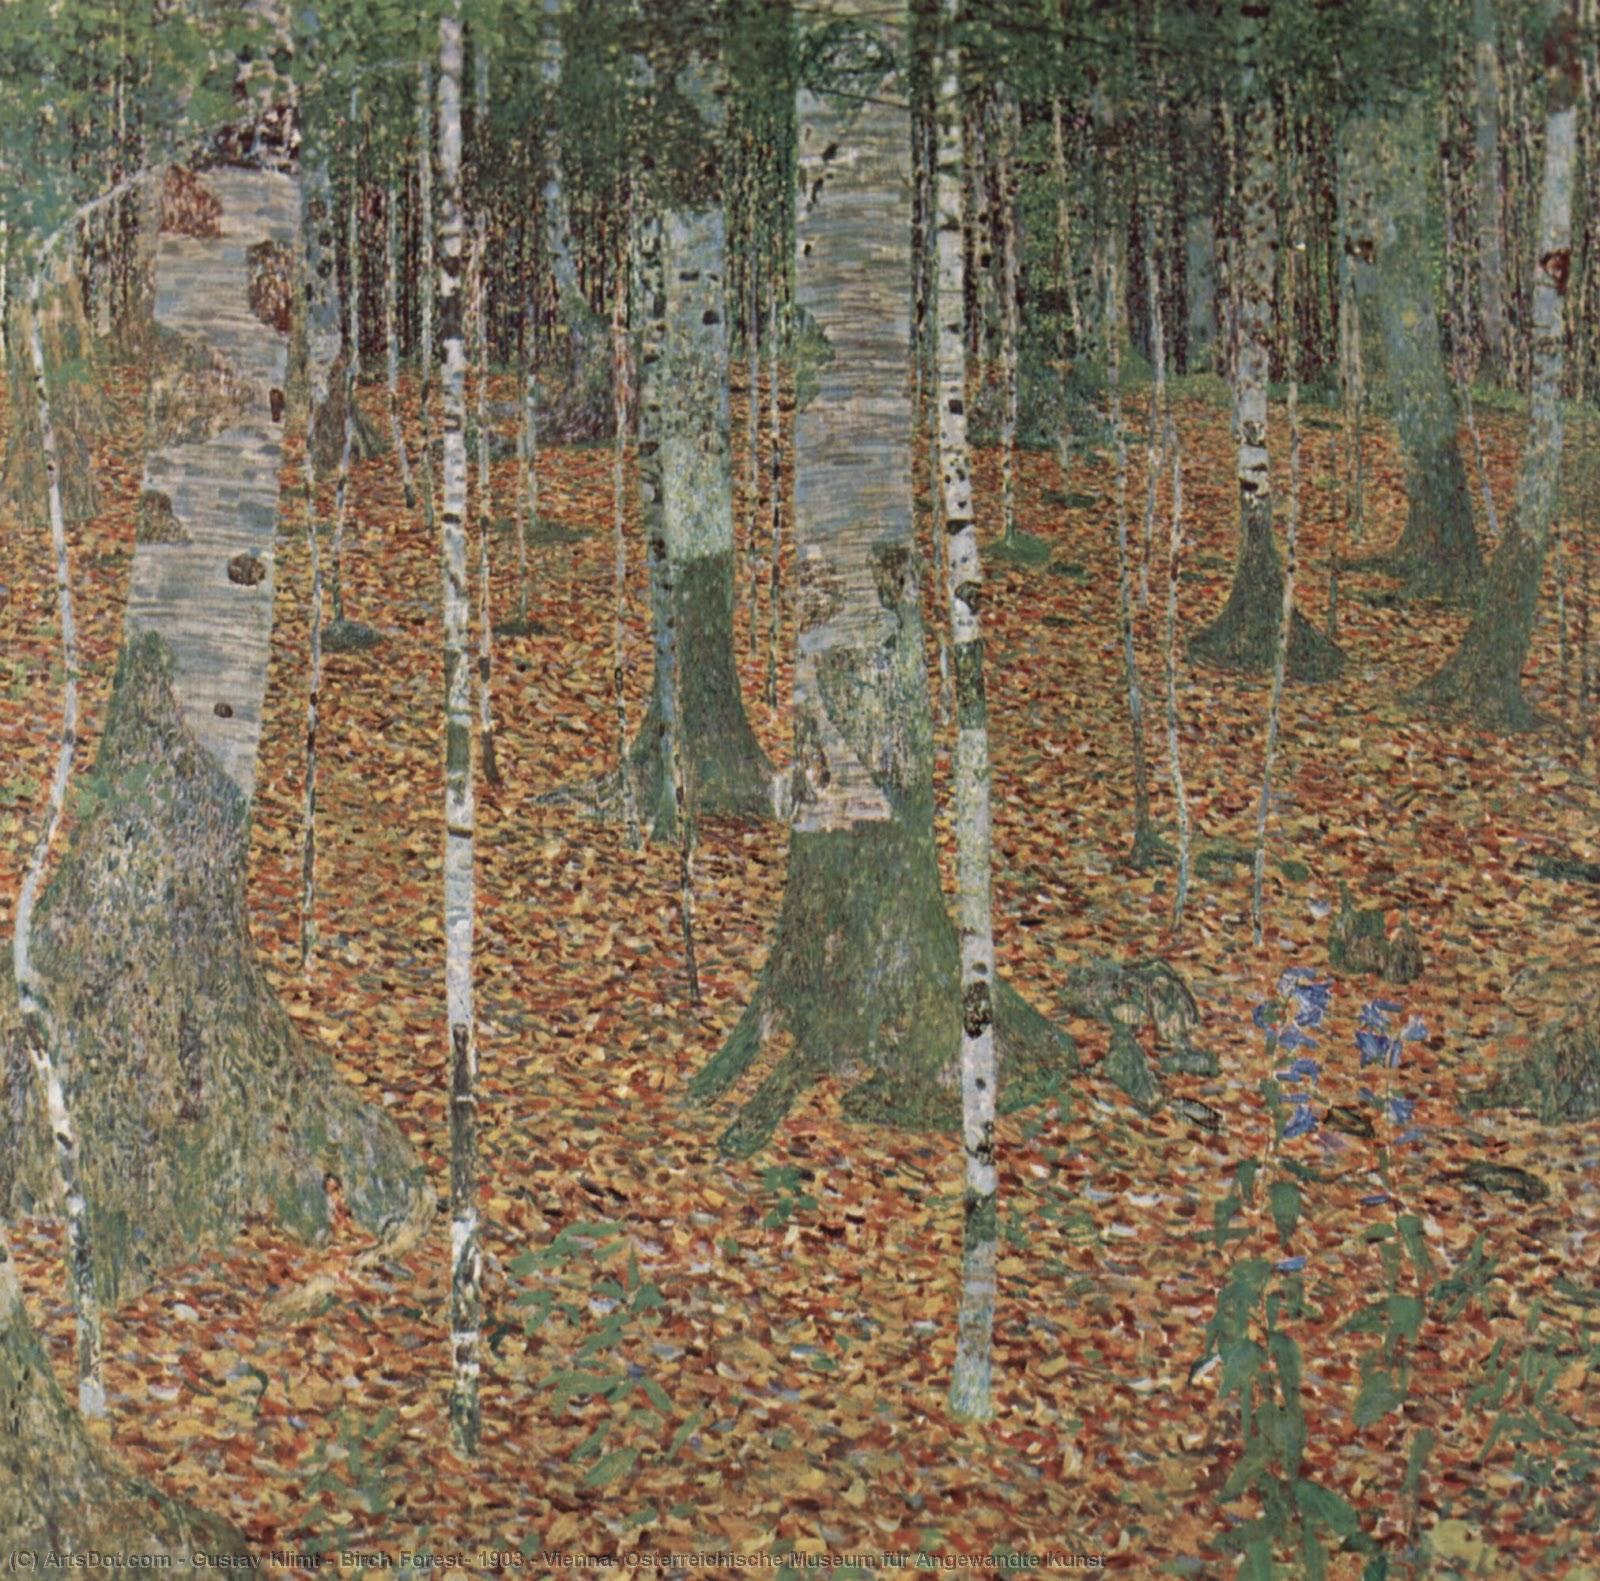 Wikioo.org - The Encyclopedia of Fine Arts - Painting, Artwork by Gustav Klimt - Birch Forest, 1903 - Vienna, Osterreichische Museum für Angewandte Kunst